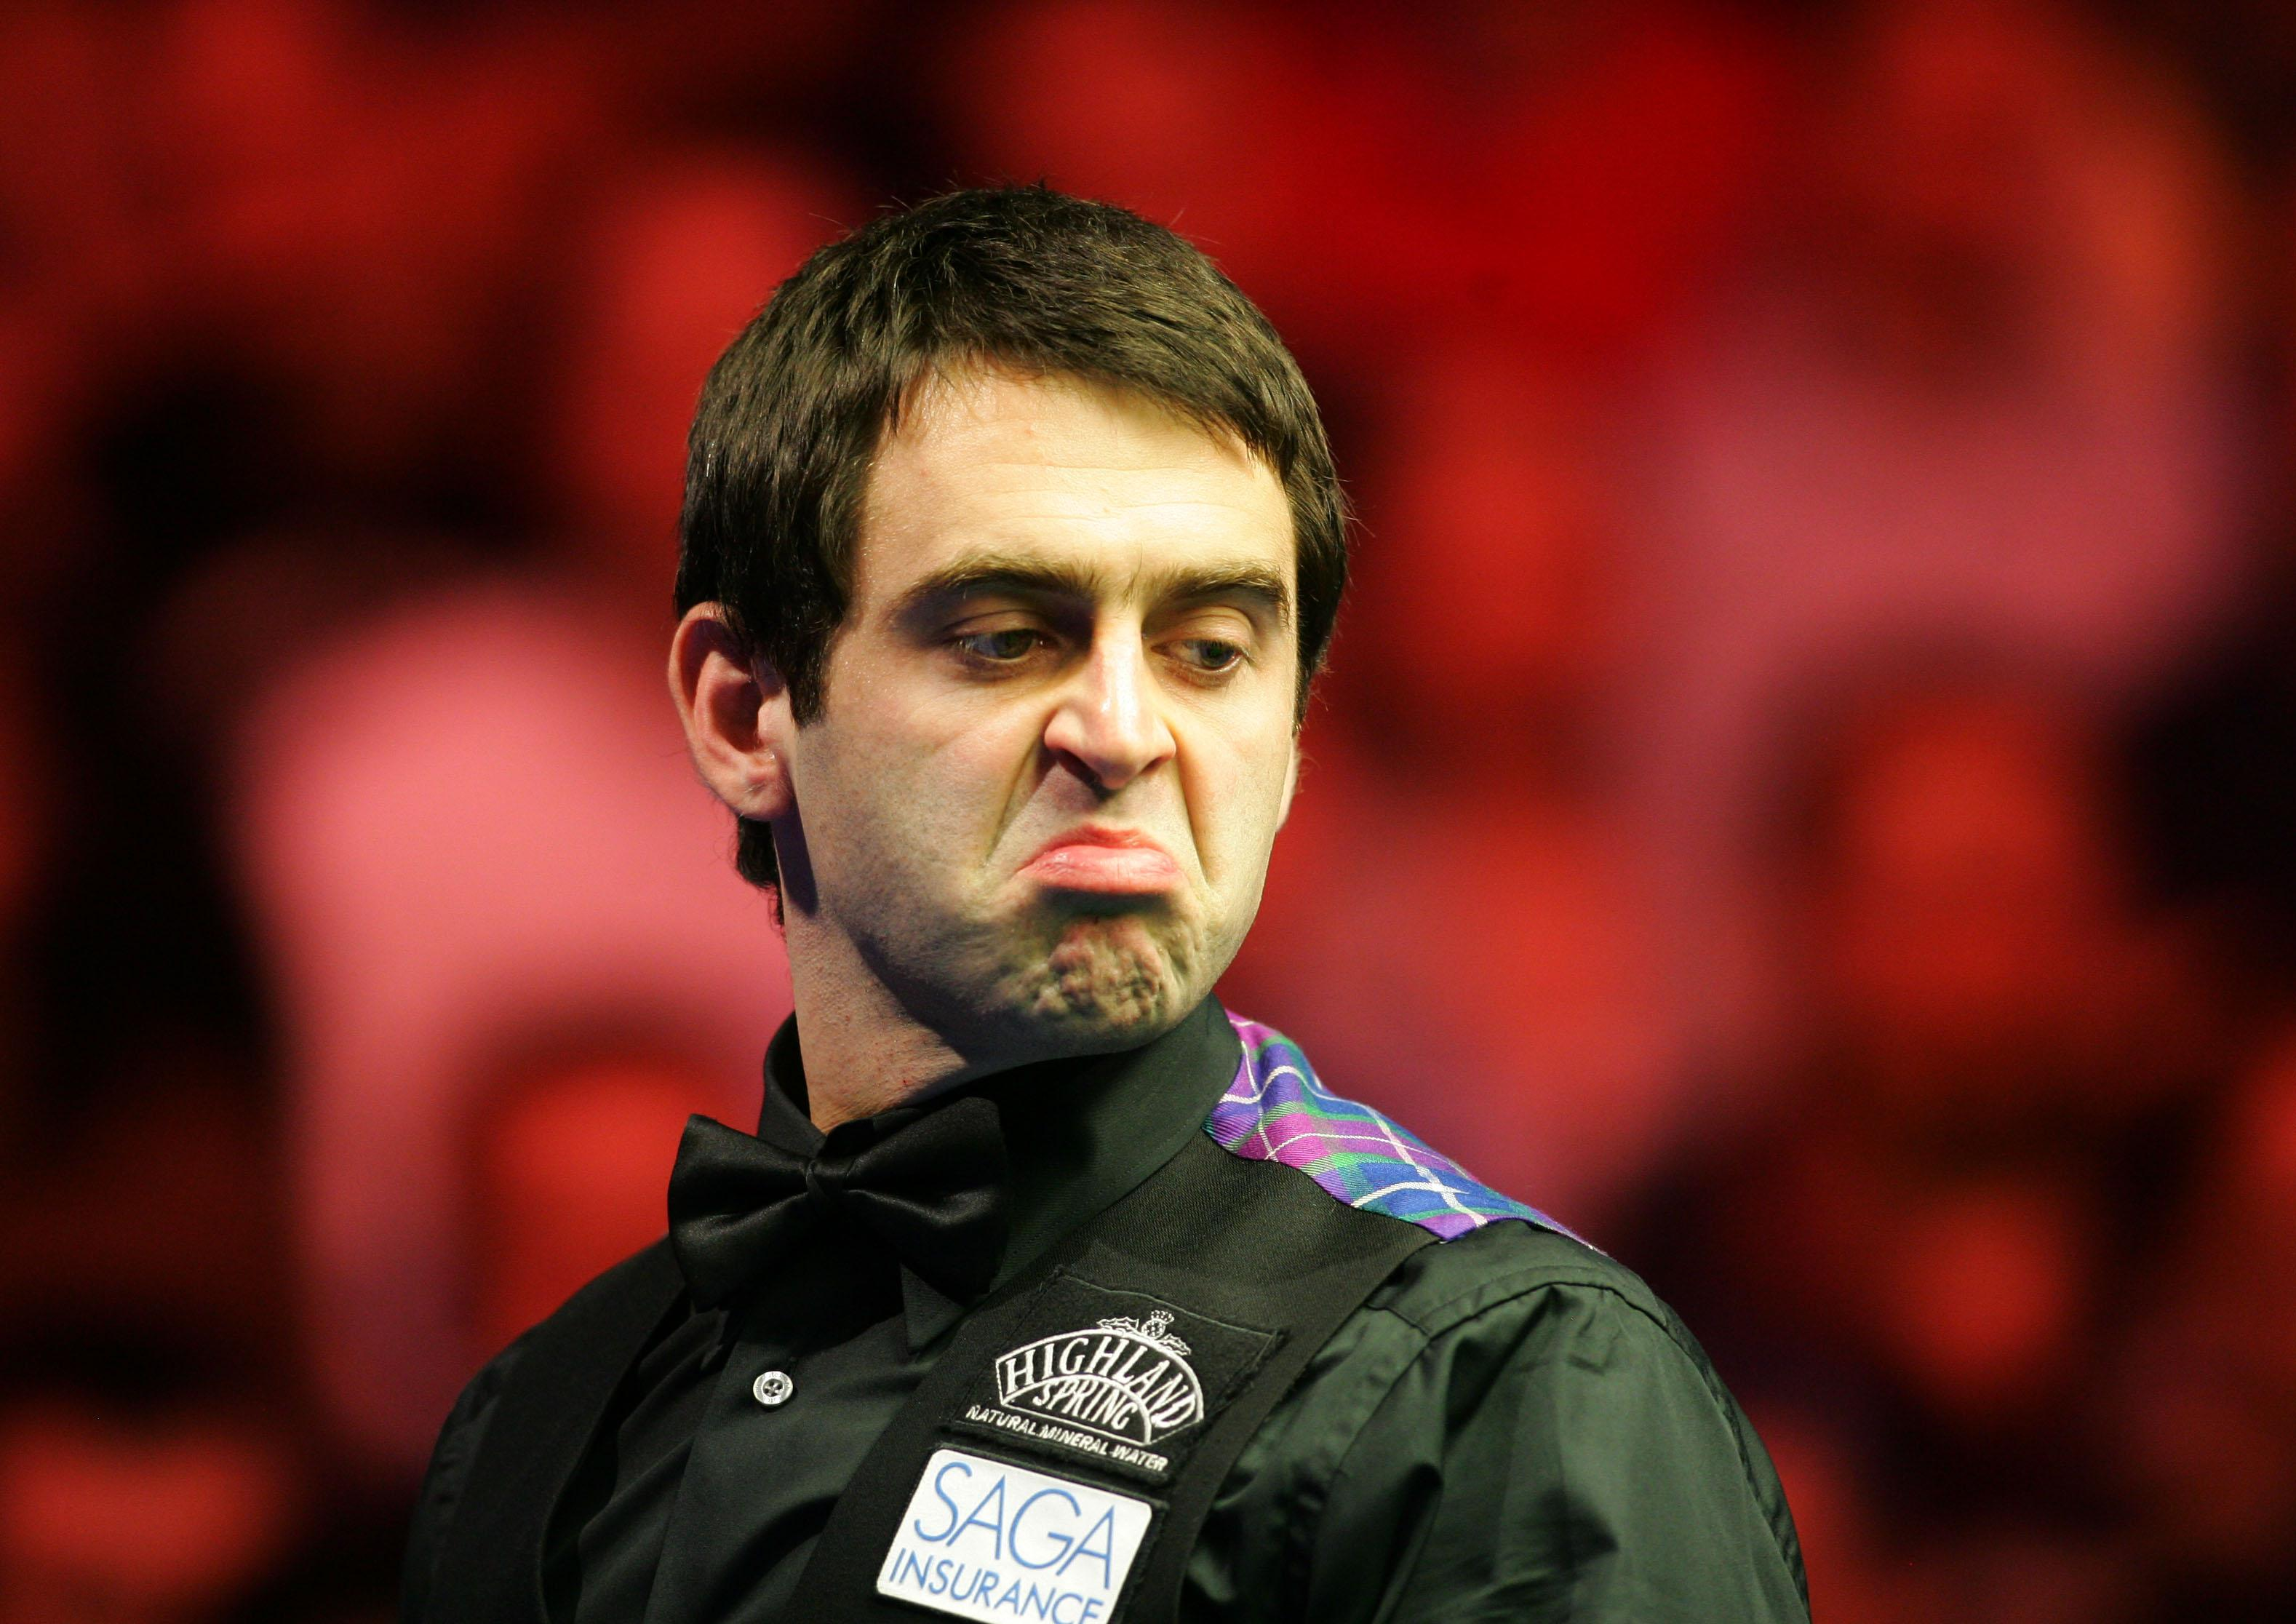 Ronnie O'Sullivan once snubbed the chance to make a 147 break because he felt the prize money wasn't enough